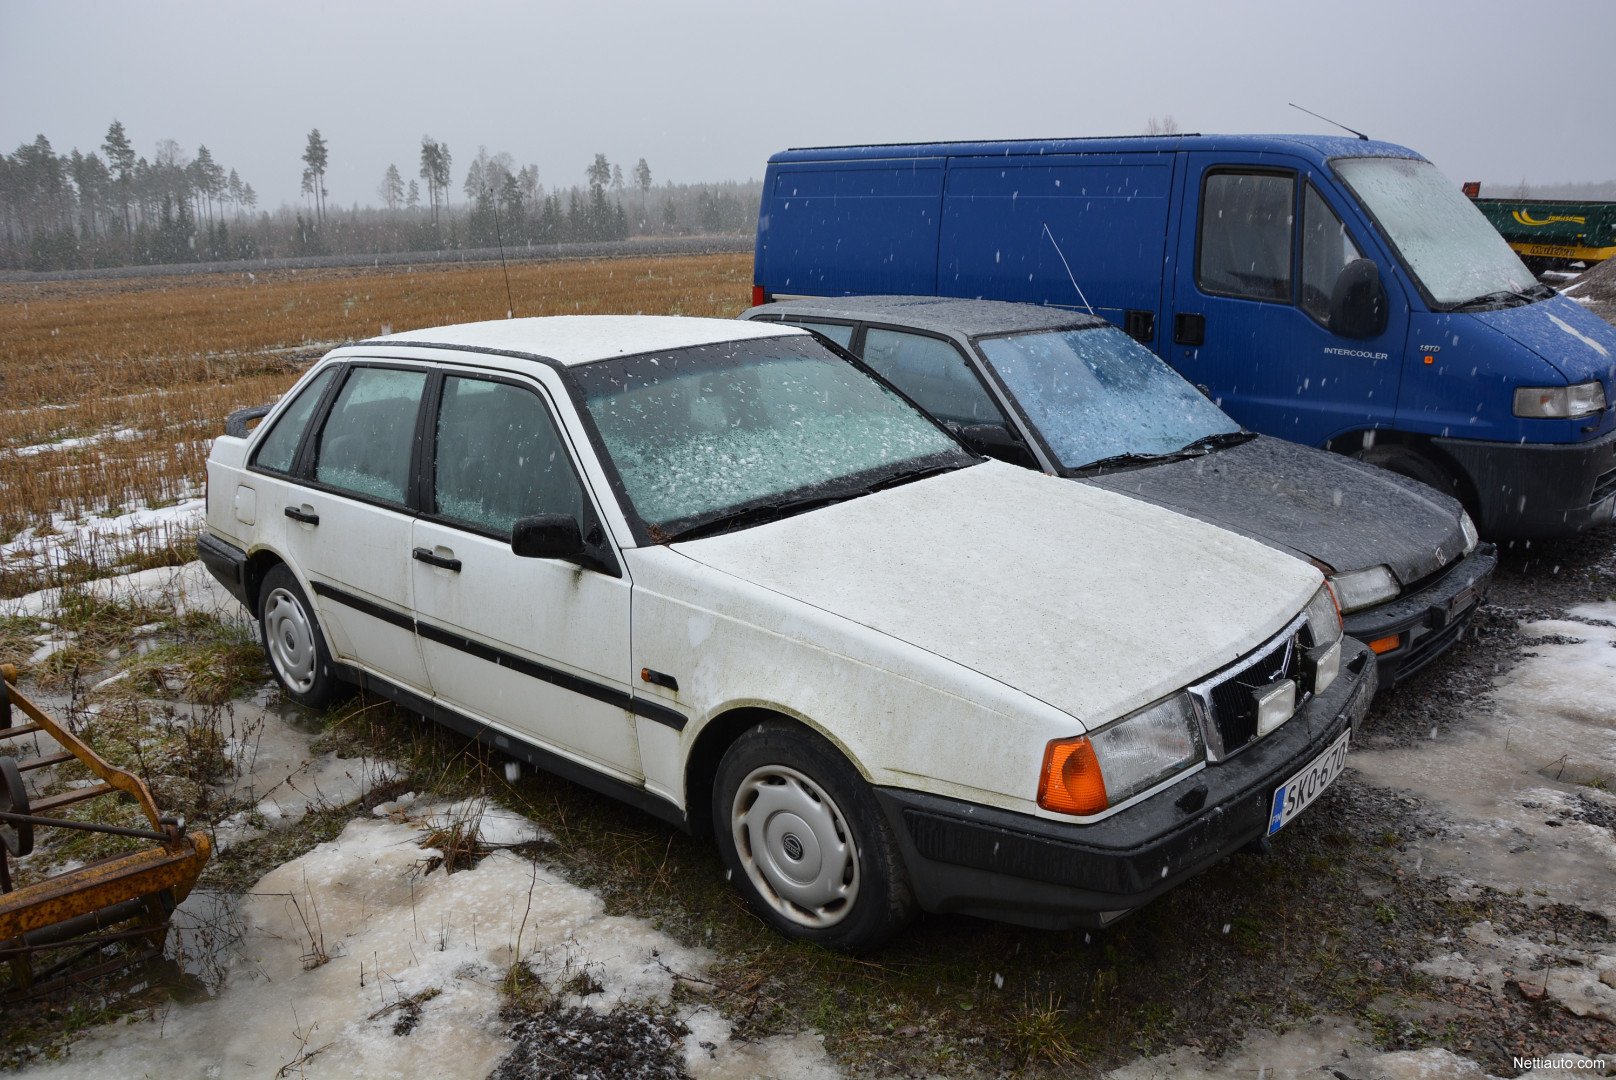 Volvo 440 Volvo 440 Dl 1 8 5d Hatchback 1993 Used Vehicle Nettiauto